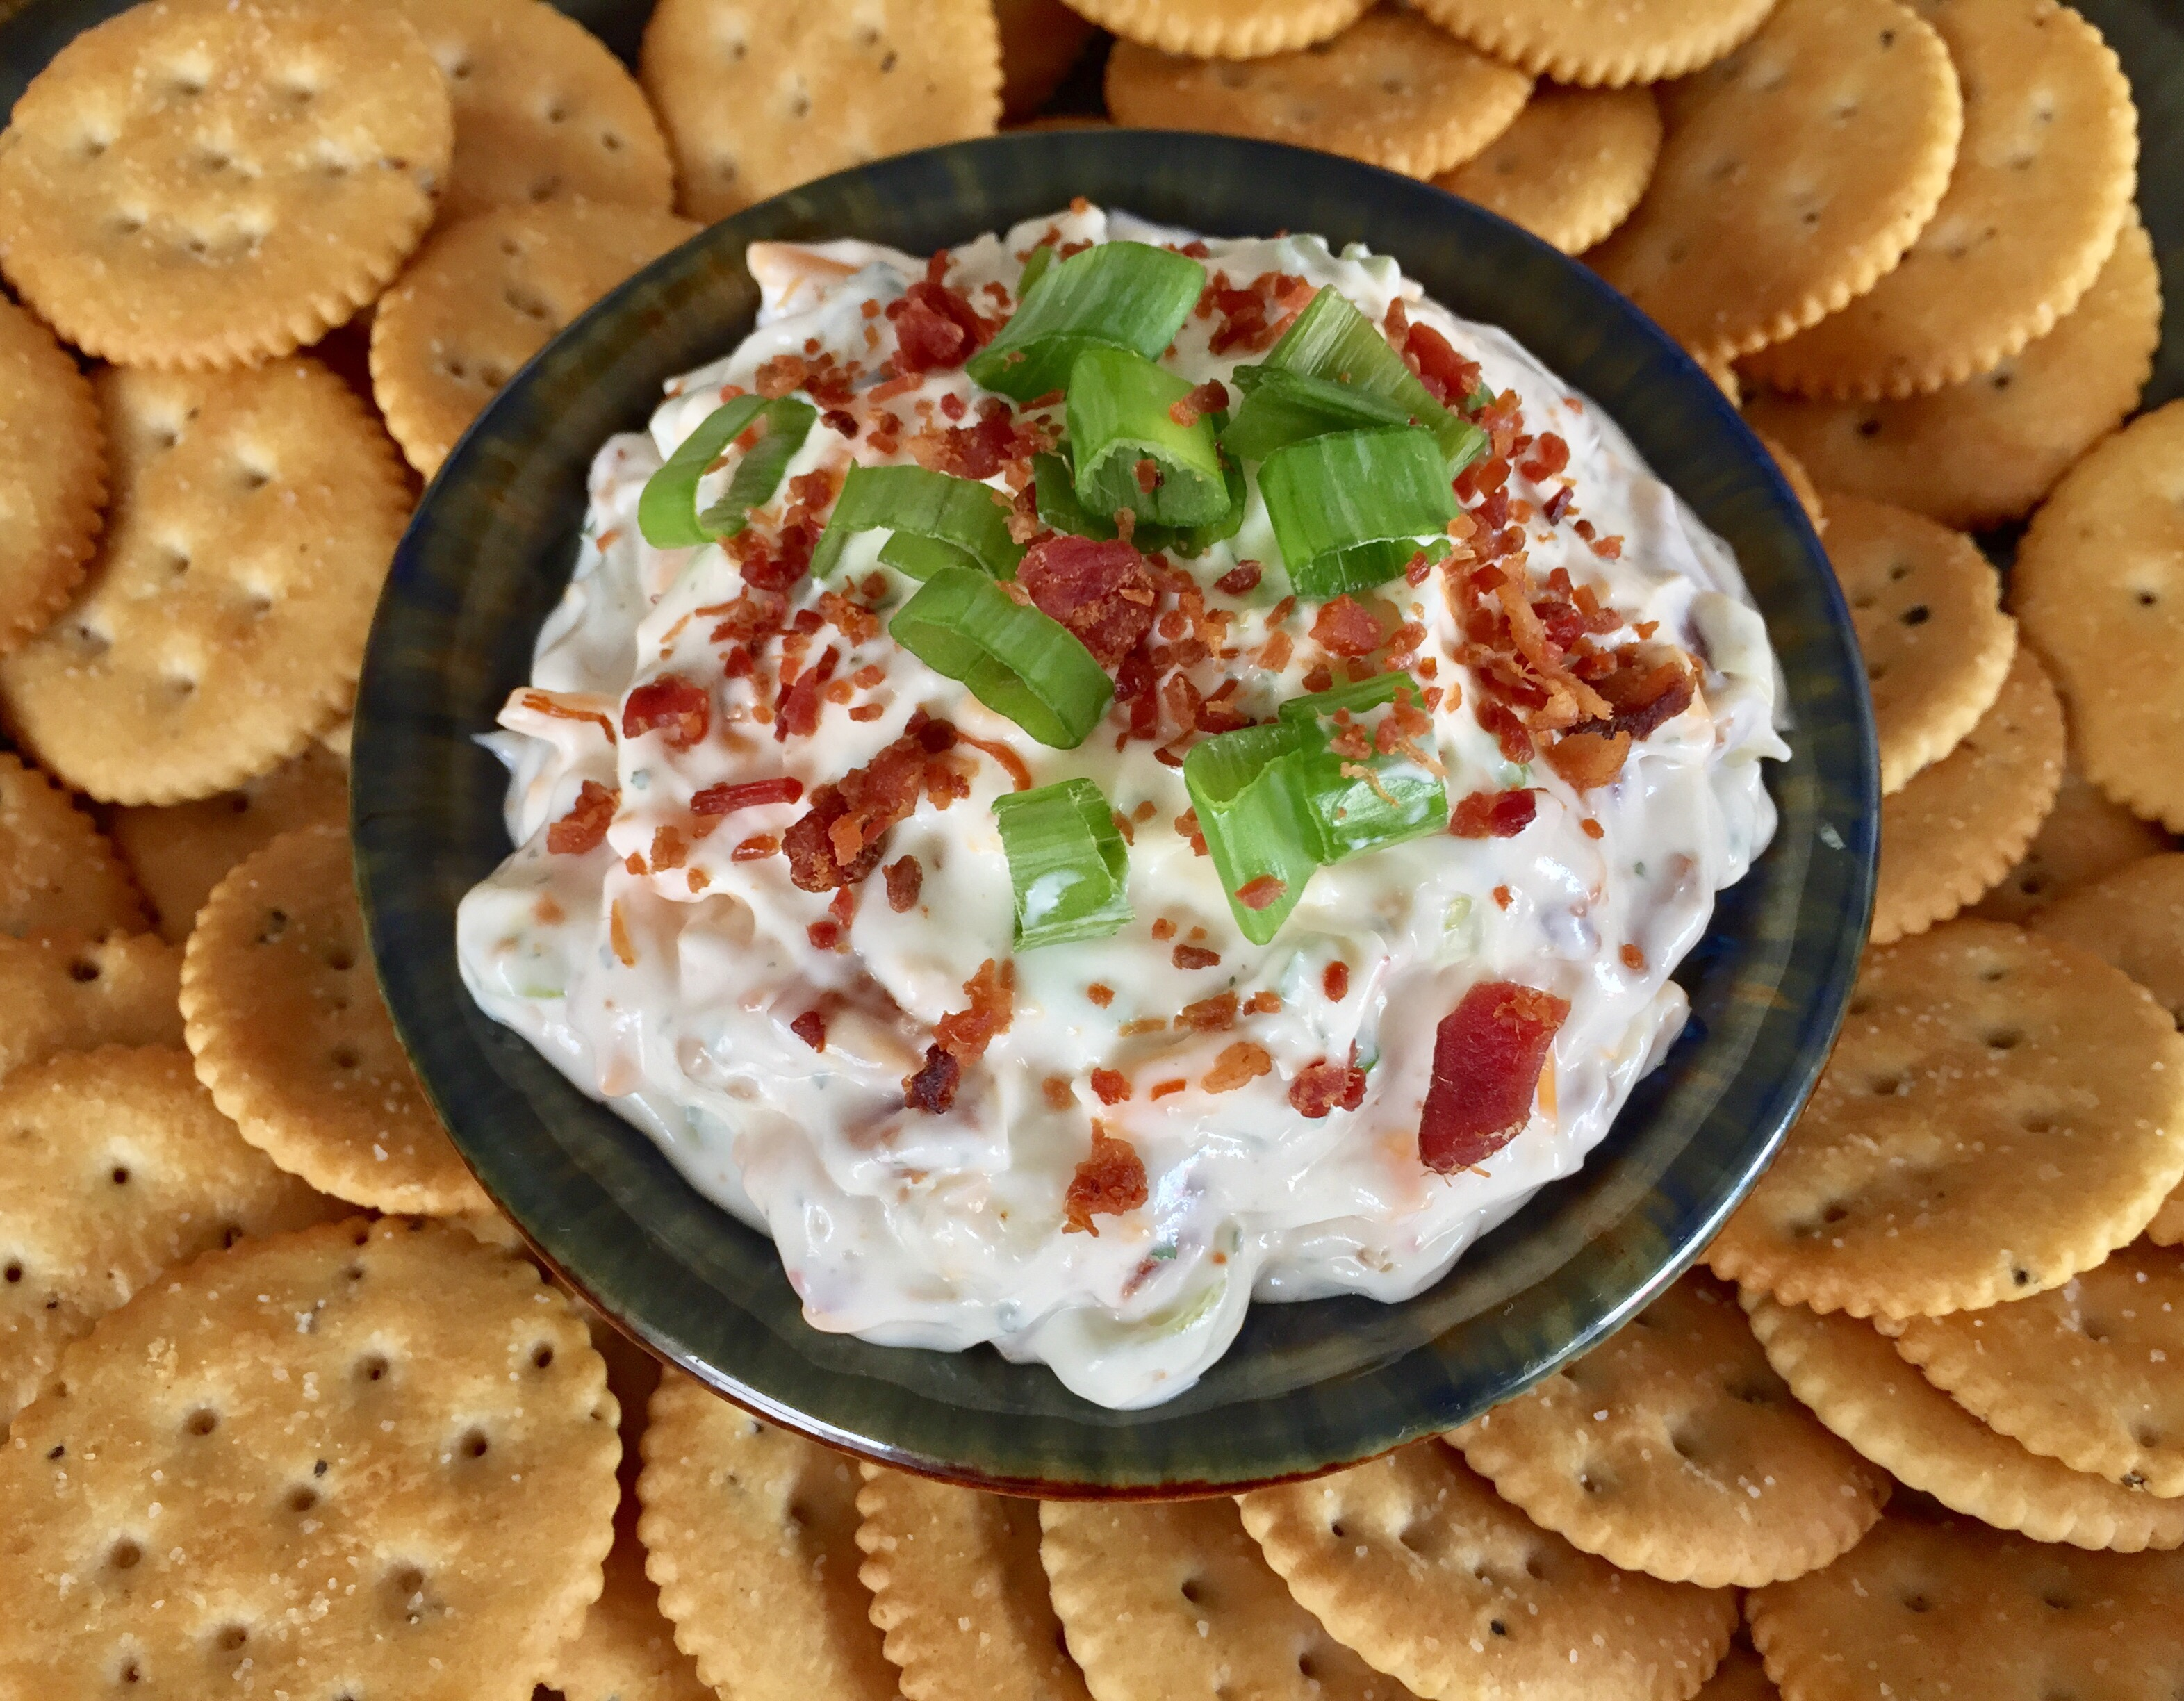 Creamy Bacon Ranch Dip